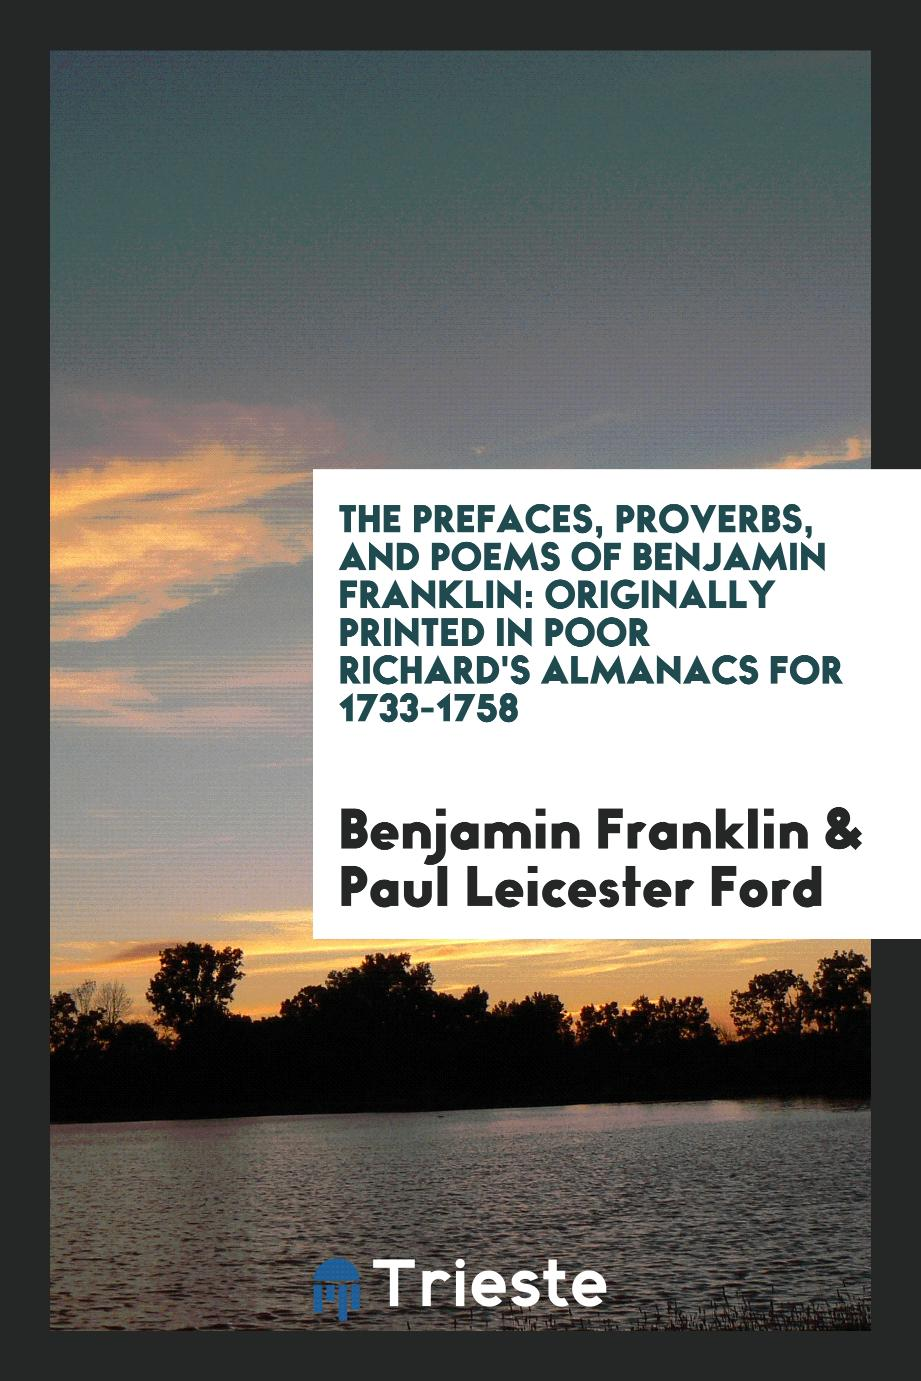 The Prefaces, Proverbs, and Poems of Benjamin Franklin: Originally Printed in Poor Richard's Almanacs for 1733-1758